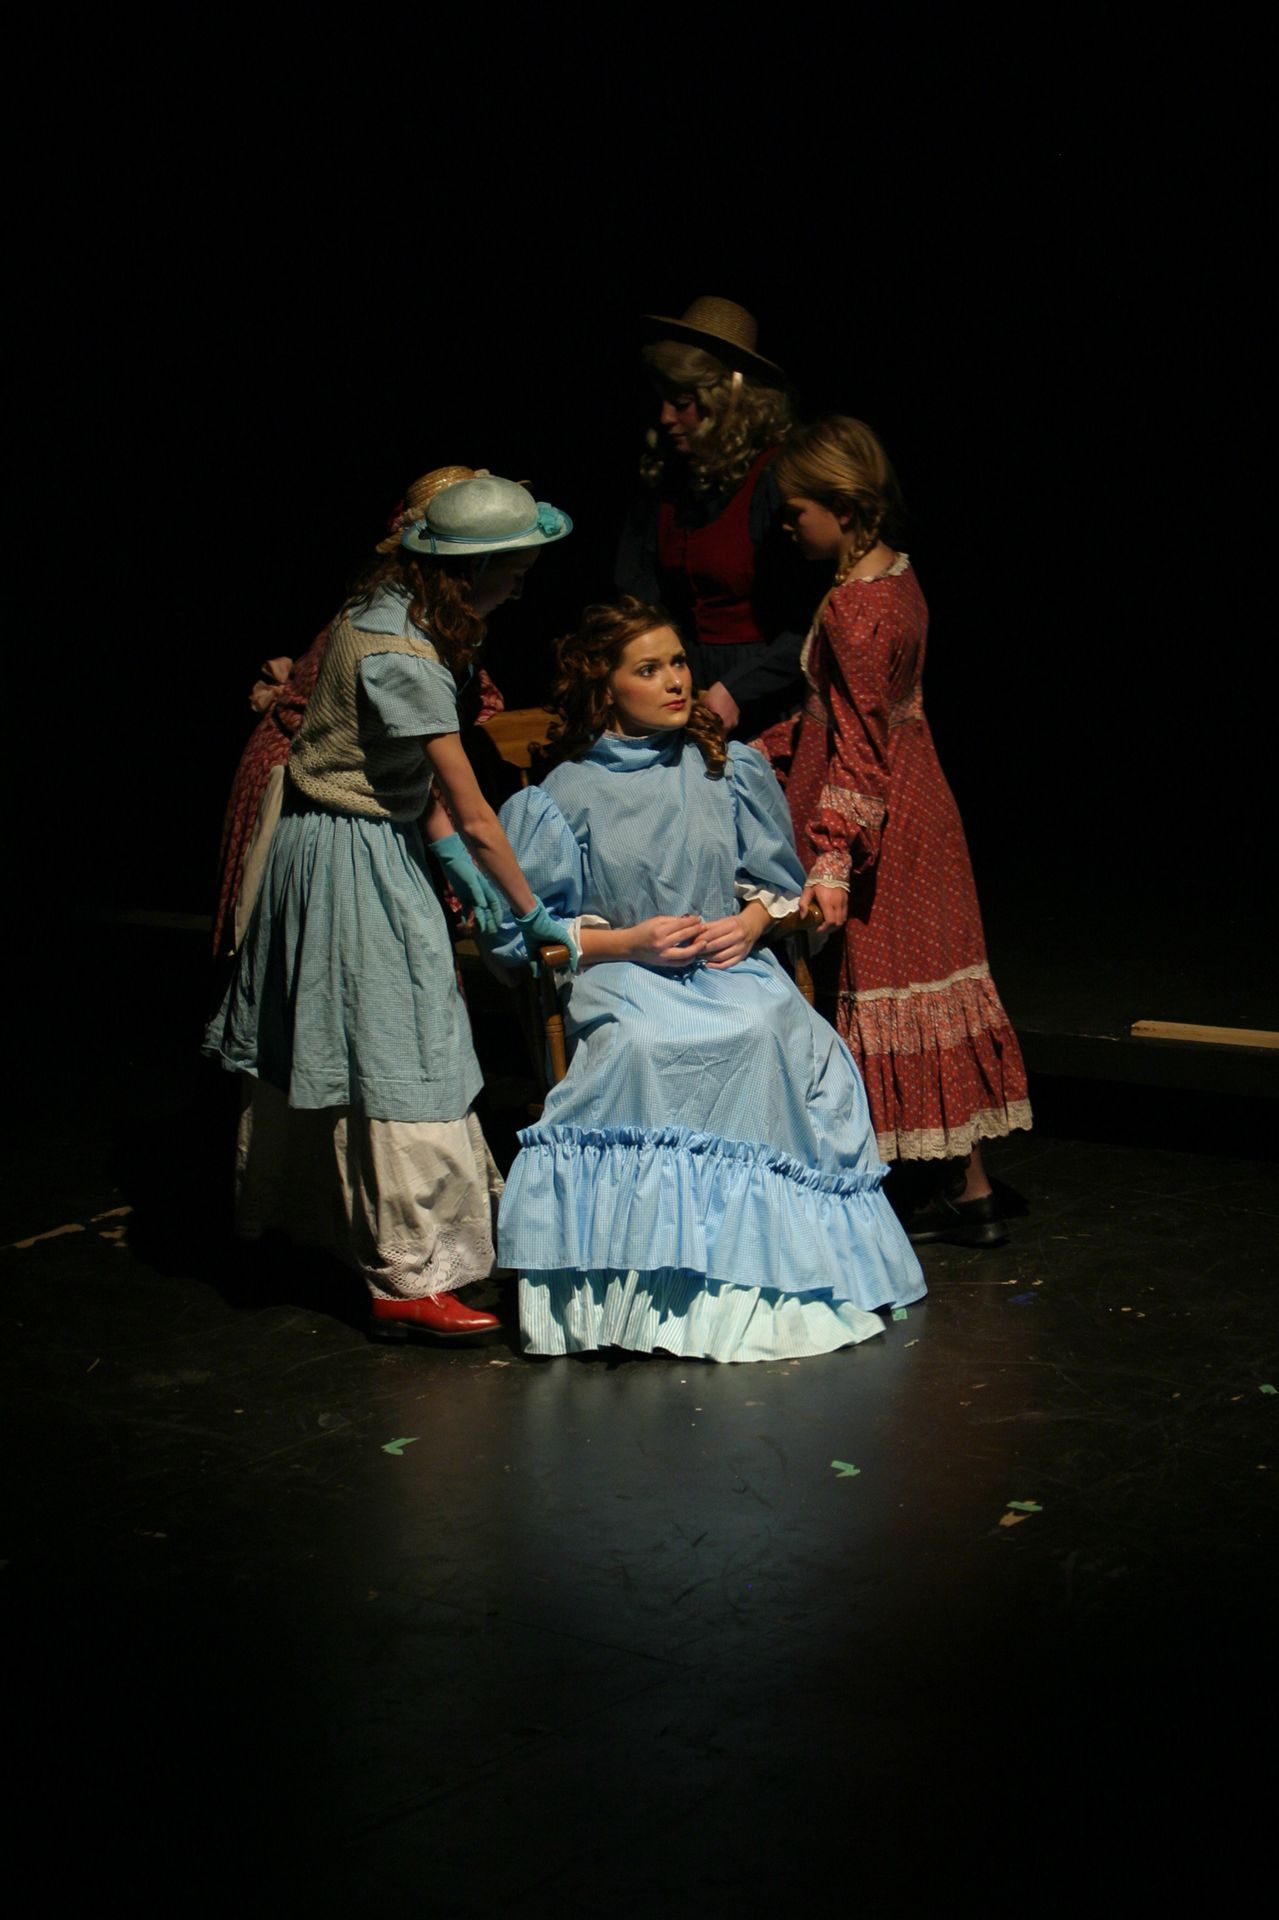 Andrea Timmons, Allison O'Toole, Annie Pentney and Kira Daly in Oklahoma